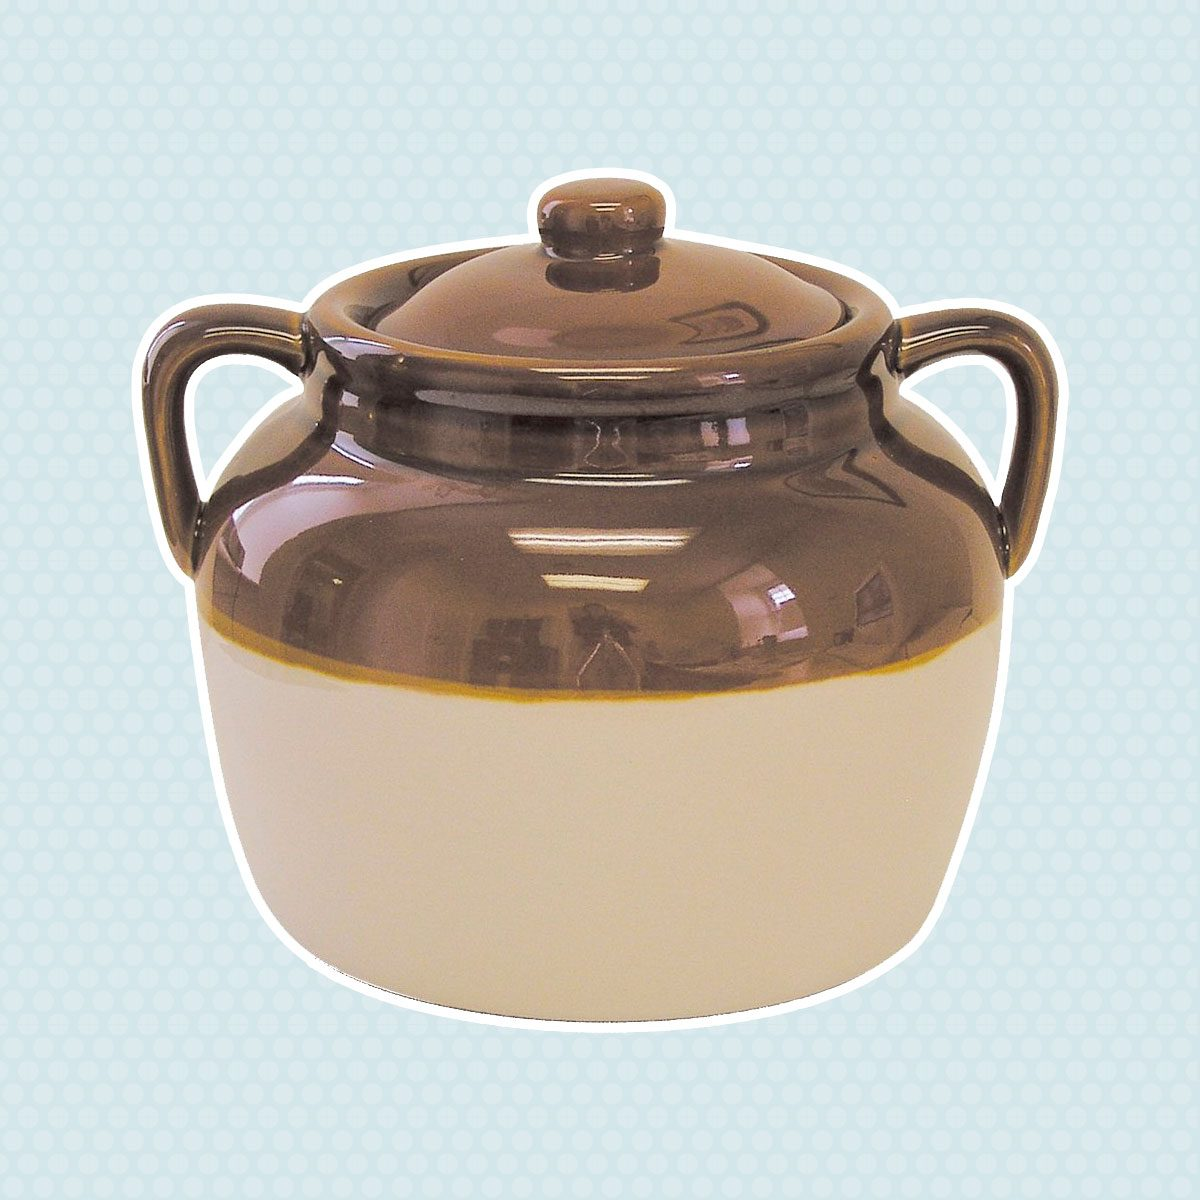 Ceramic bean pot